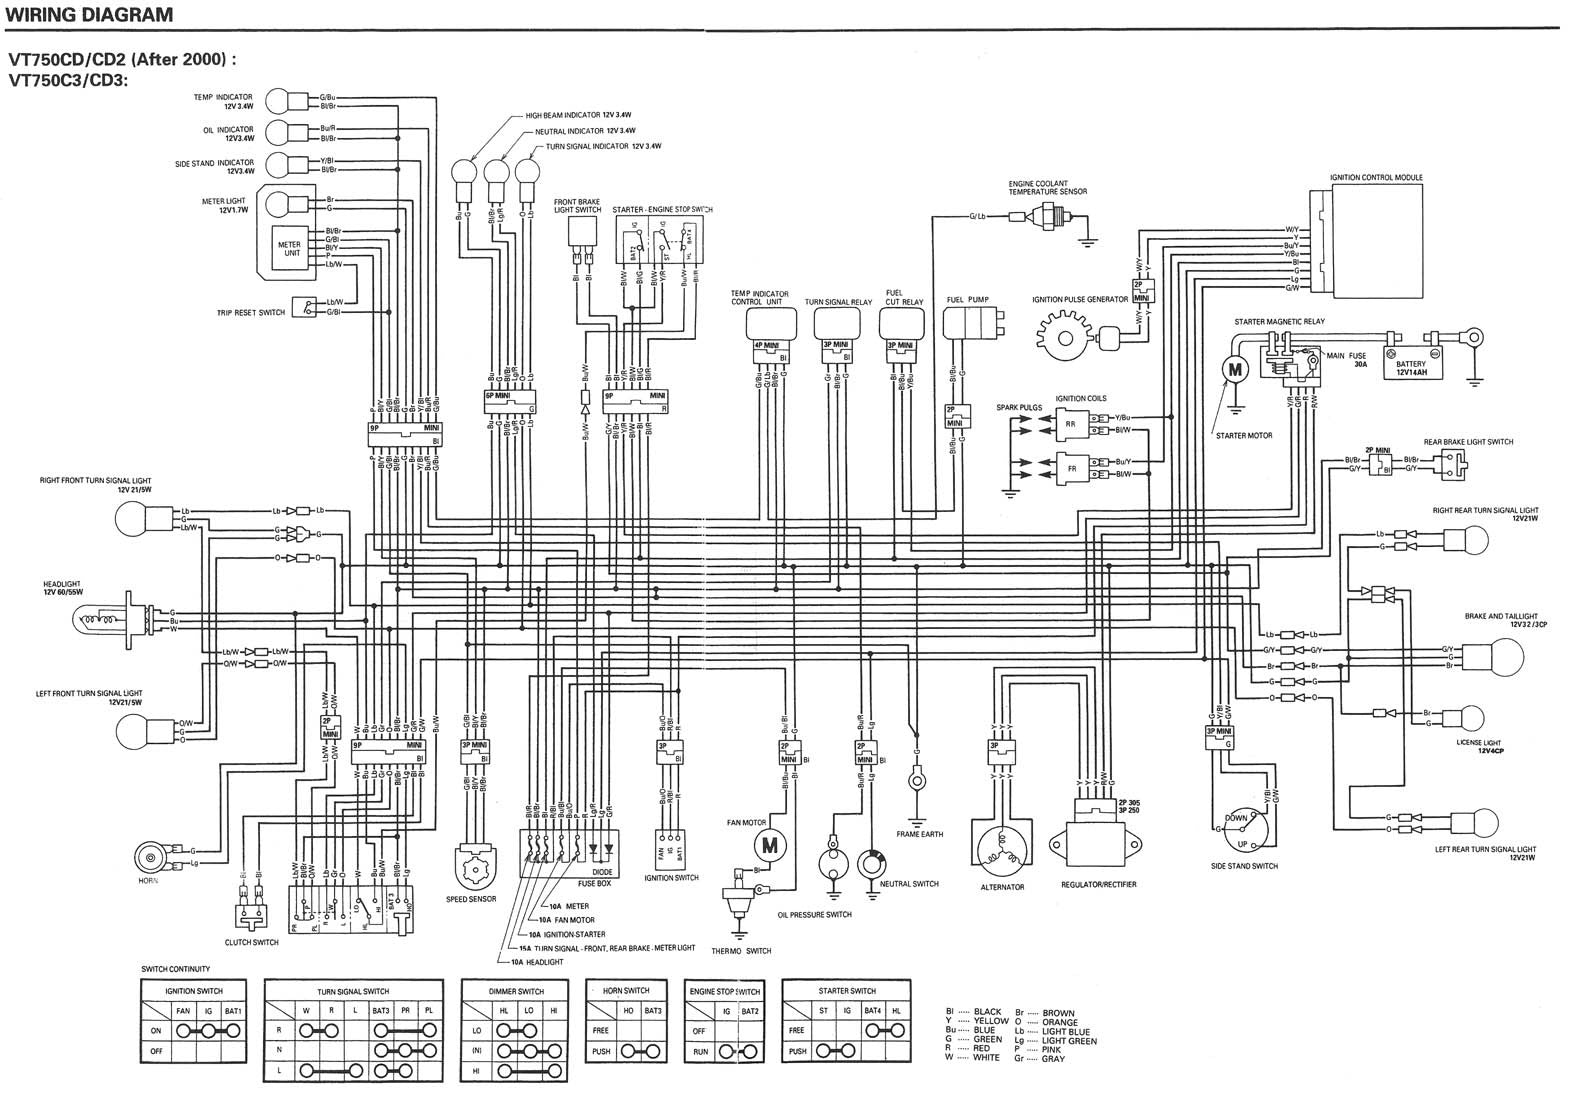 Faq Tj Brutal Customs Mini Chopper Wiring Diagram For Electric Start With Honda Vt750 Ace 2001 2003 V2